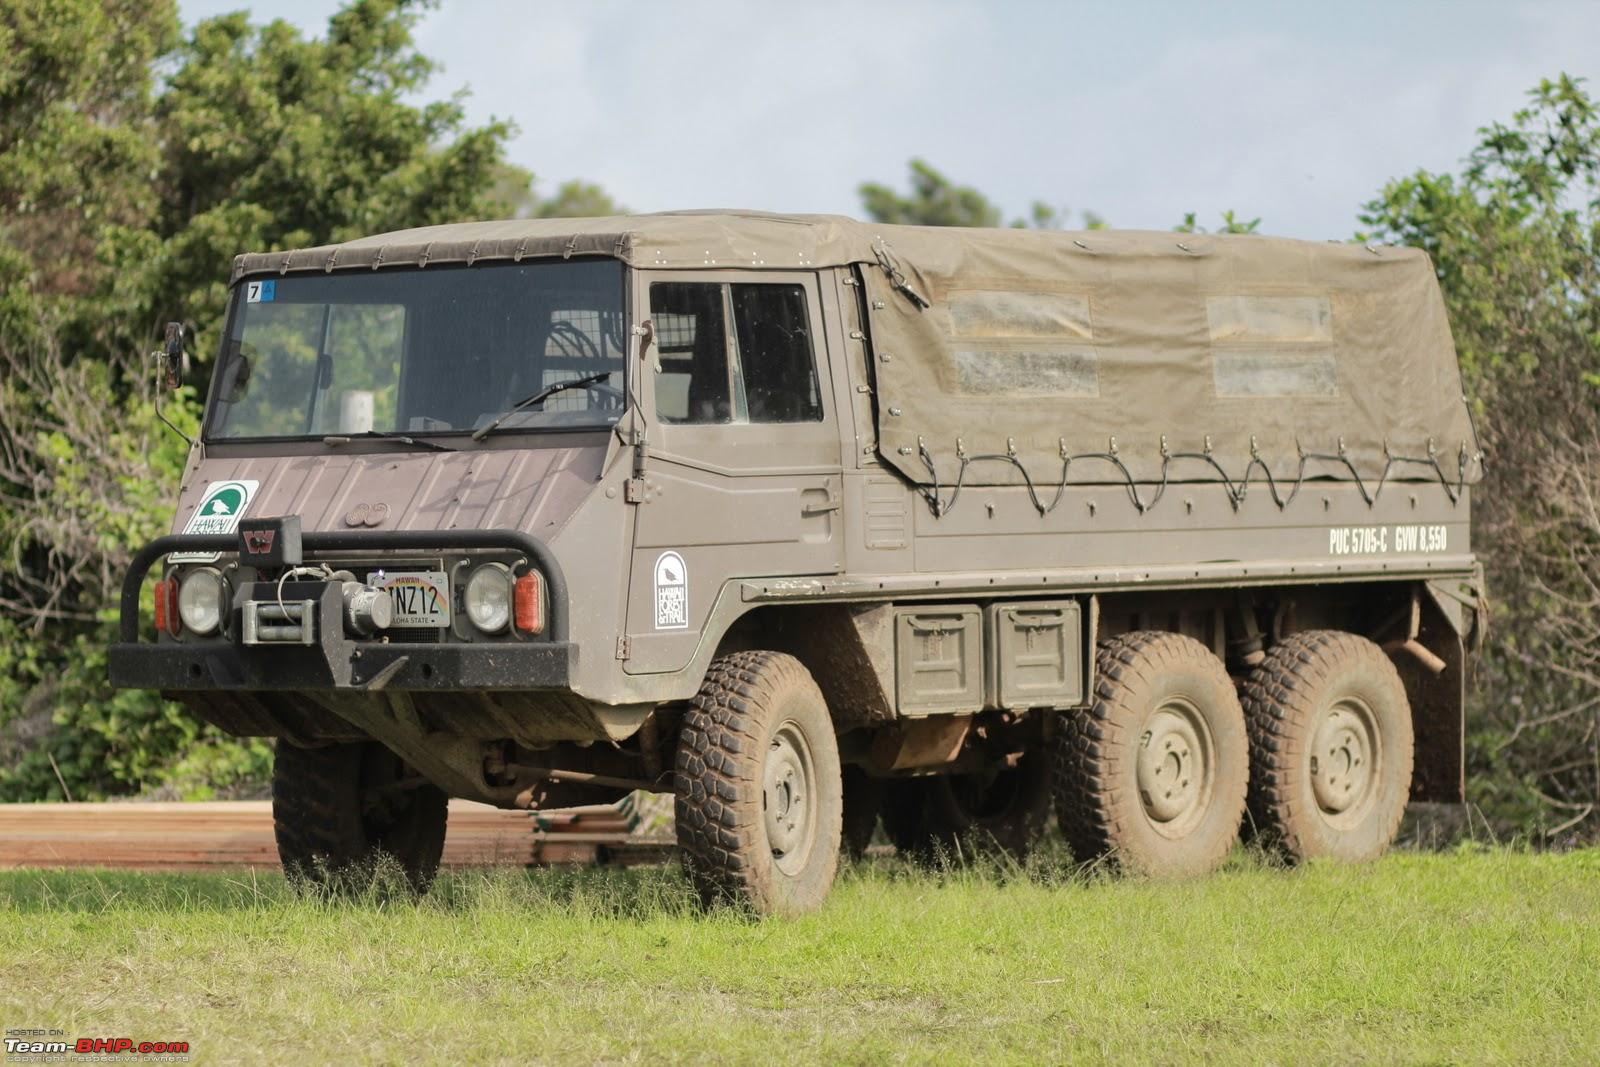 The Pinzgauer 4x4 6x6 Team Bhp